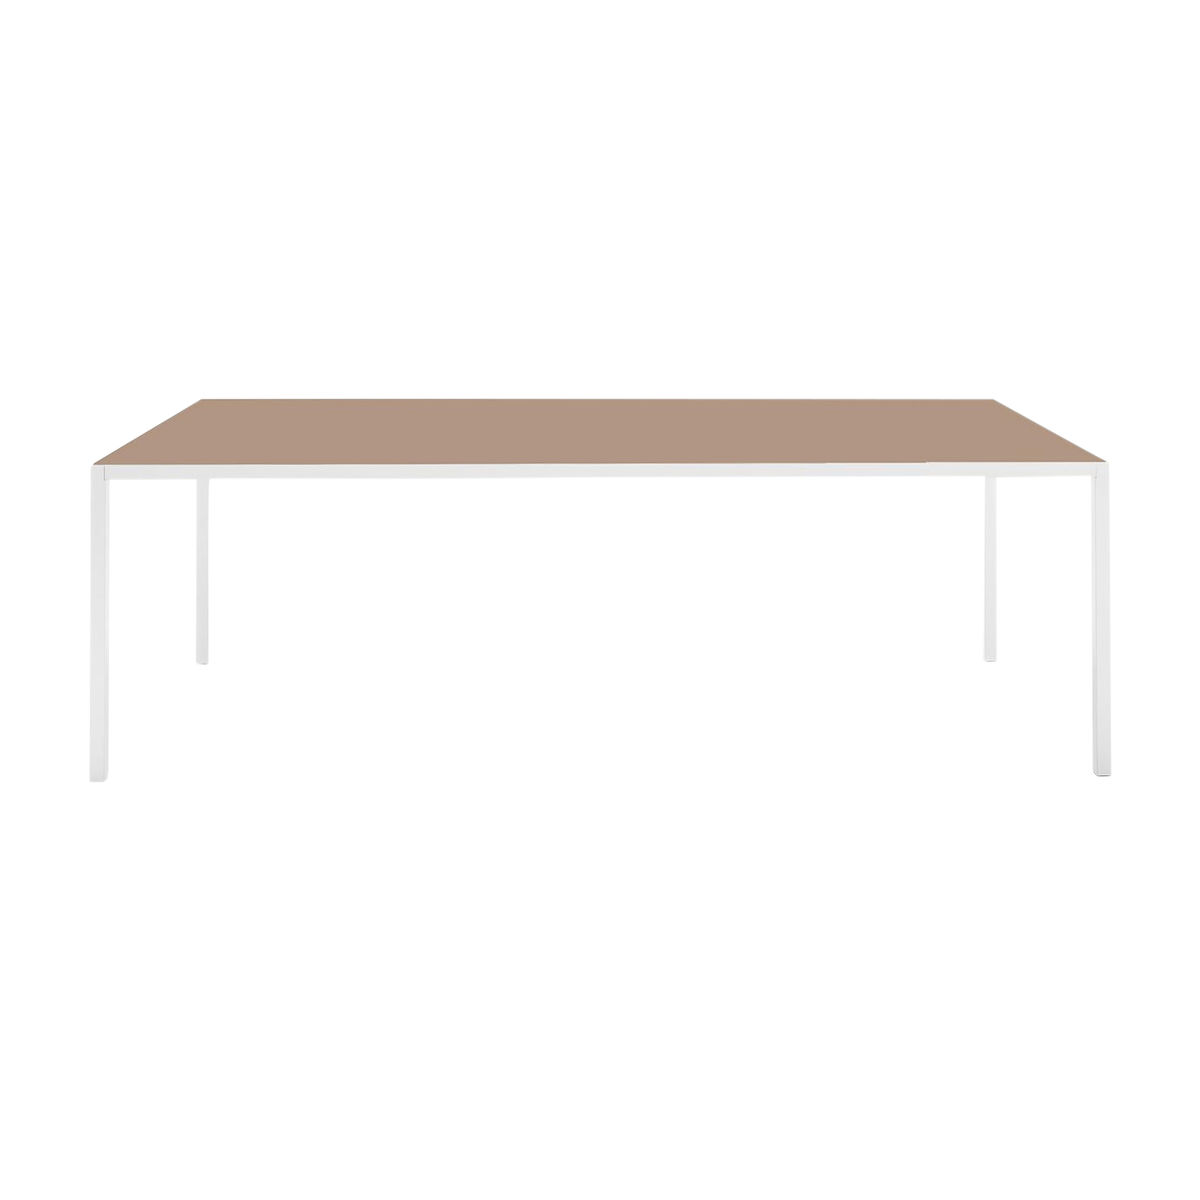 Lim 3 0 fenix table mdf italia for Underline the table